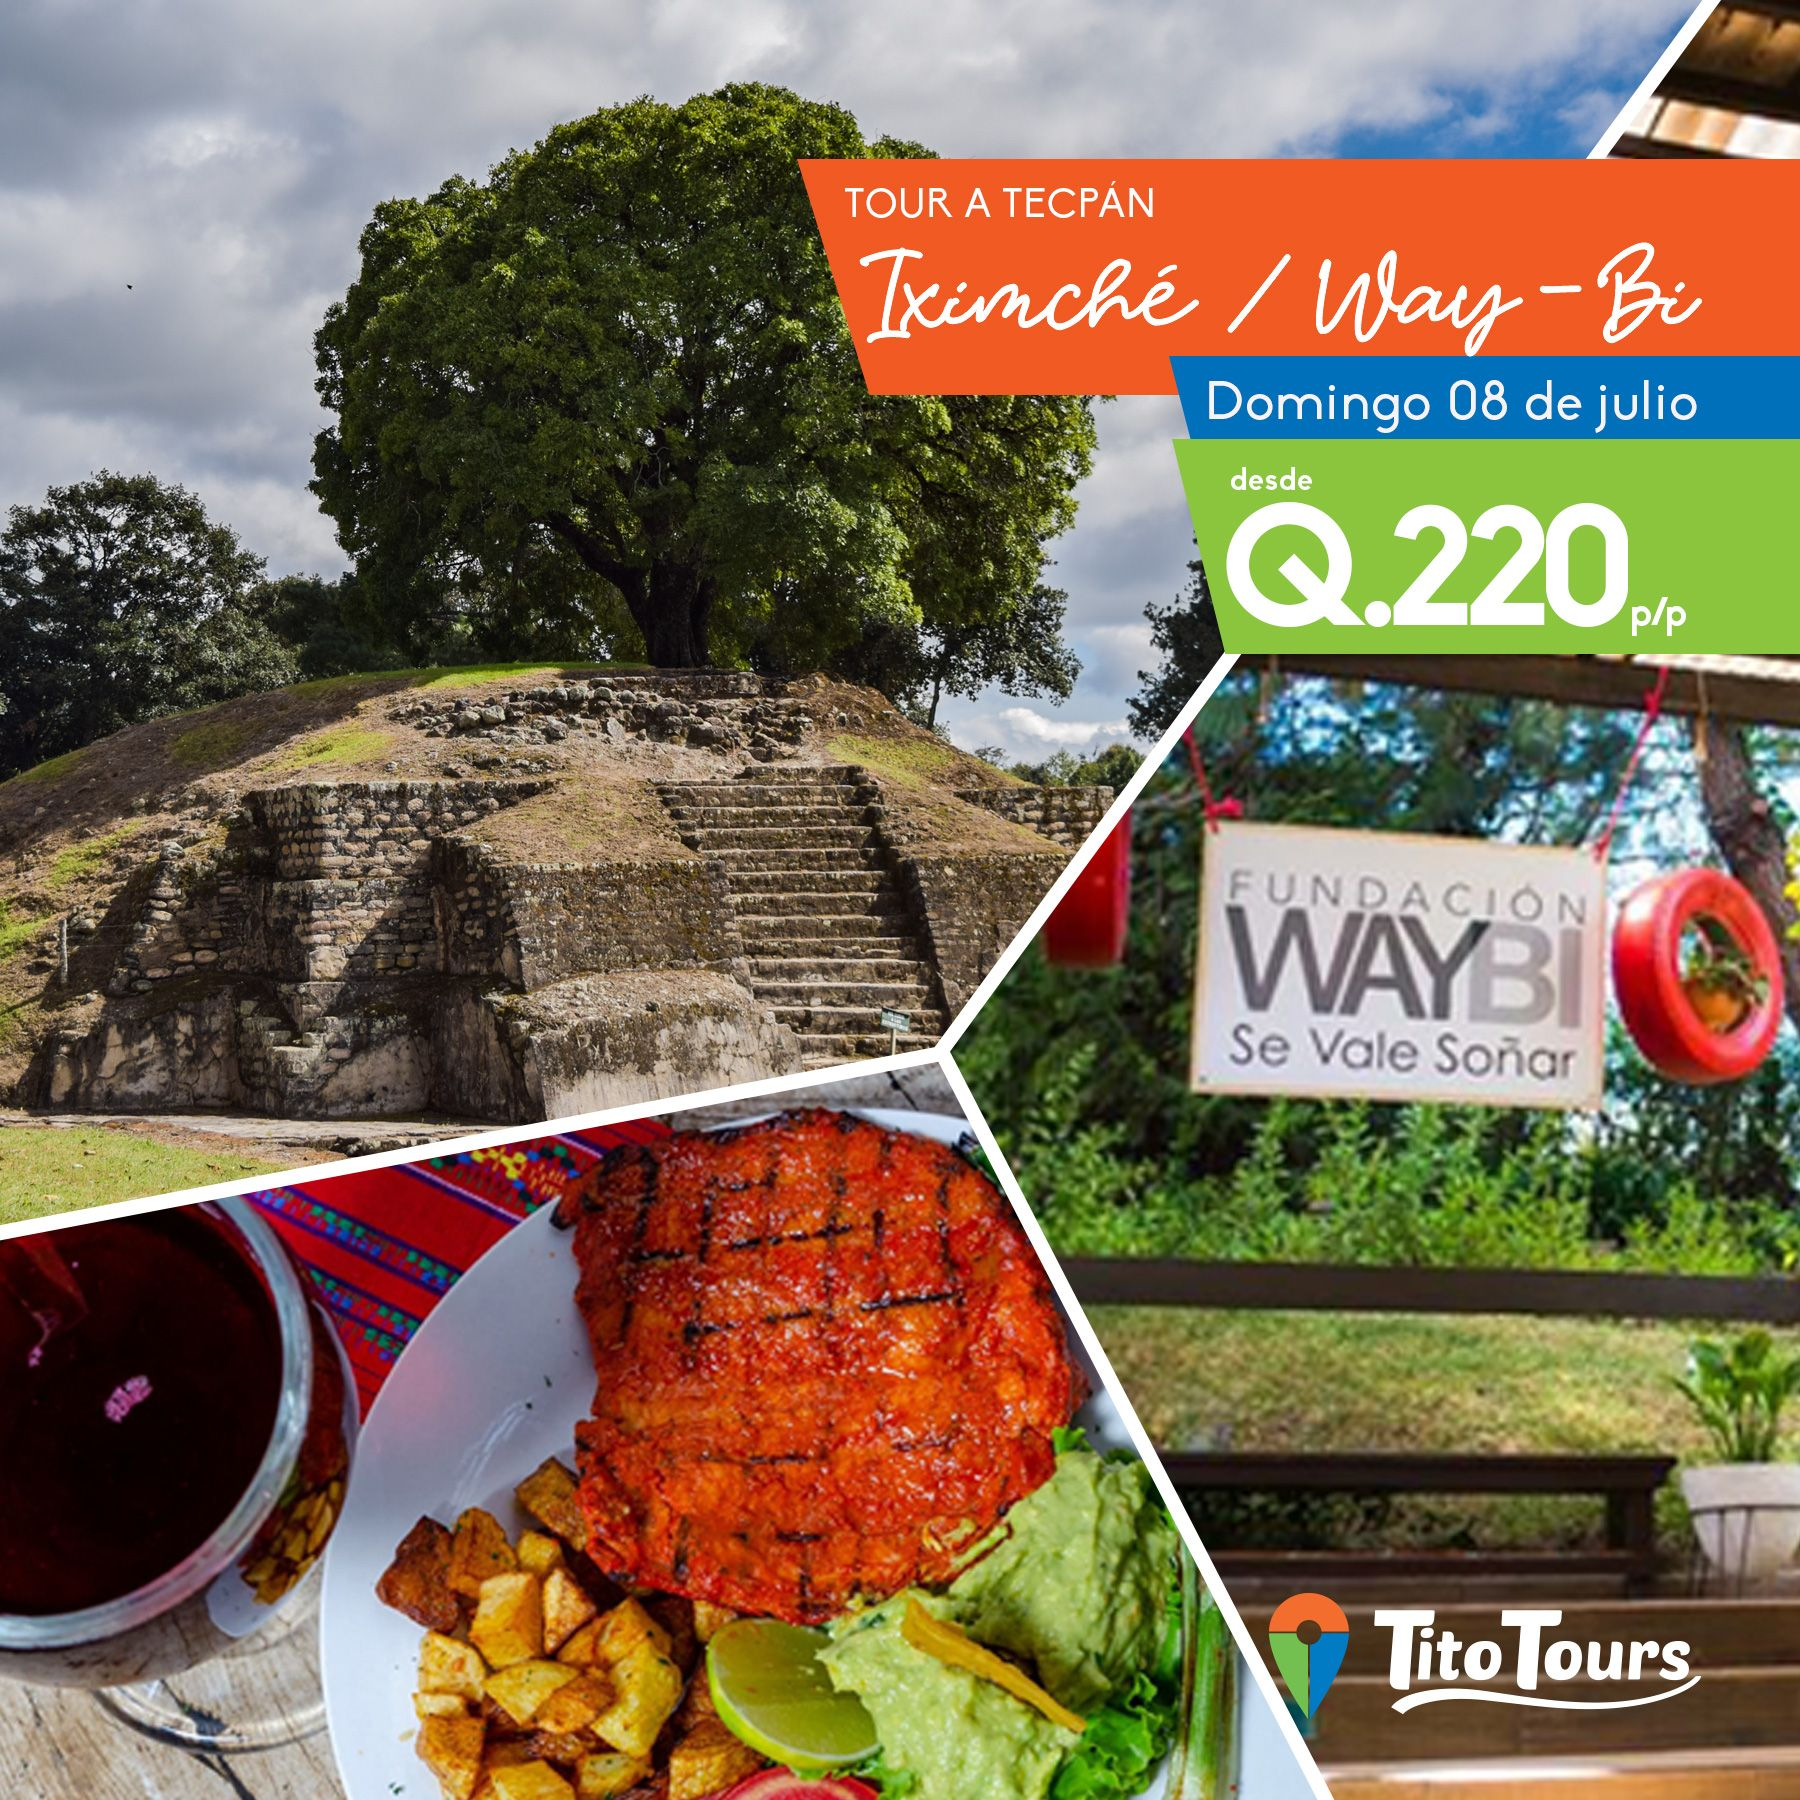 Tour a Iximche y restaurante Way-bi